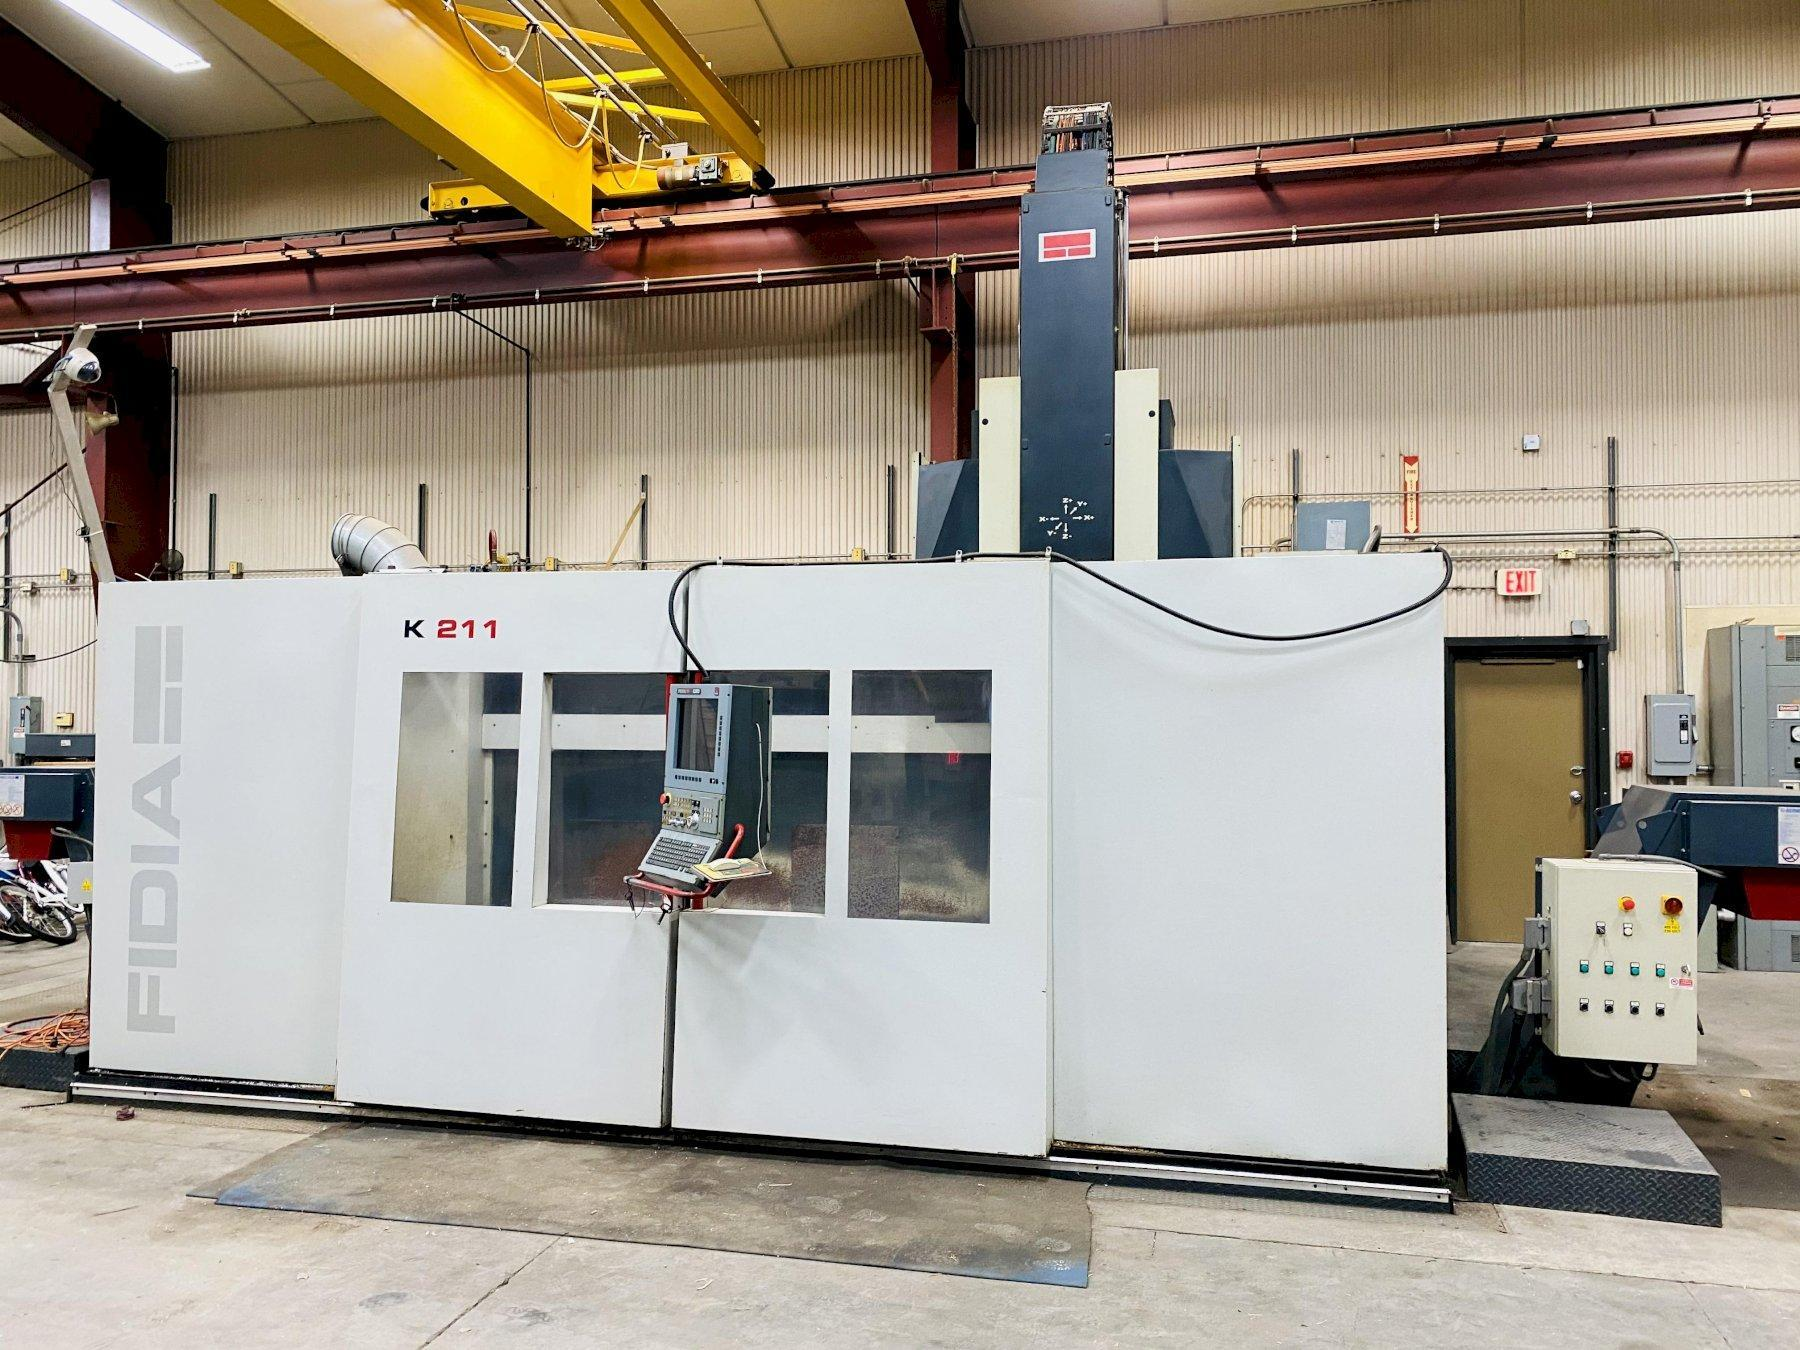 FIDIA MODEL K211 5-AXIS HIGH SPEED MACHINING CENTER W/ XP OPERATING SYSTEM. STOCK # 1264320